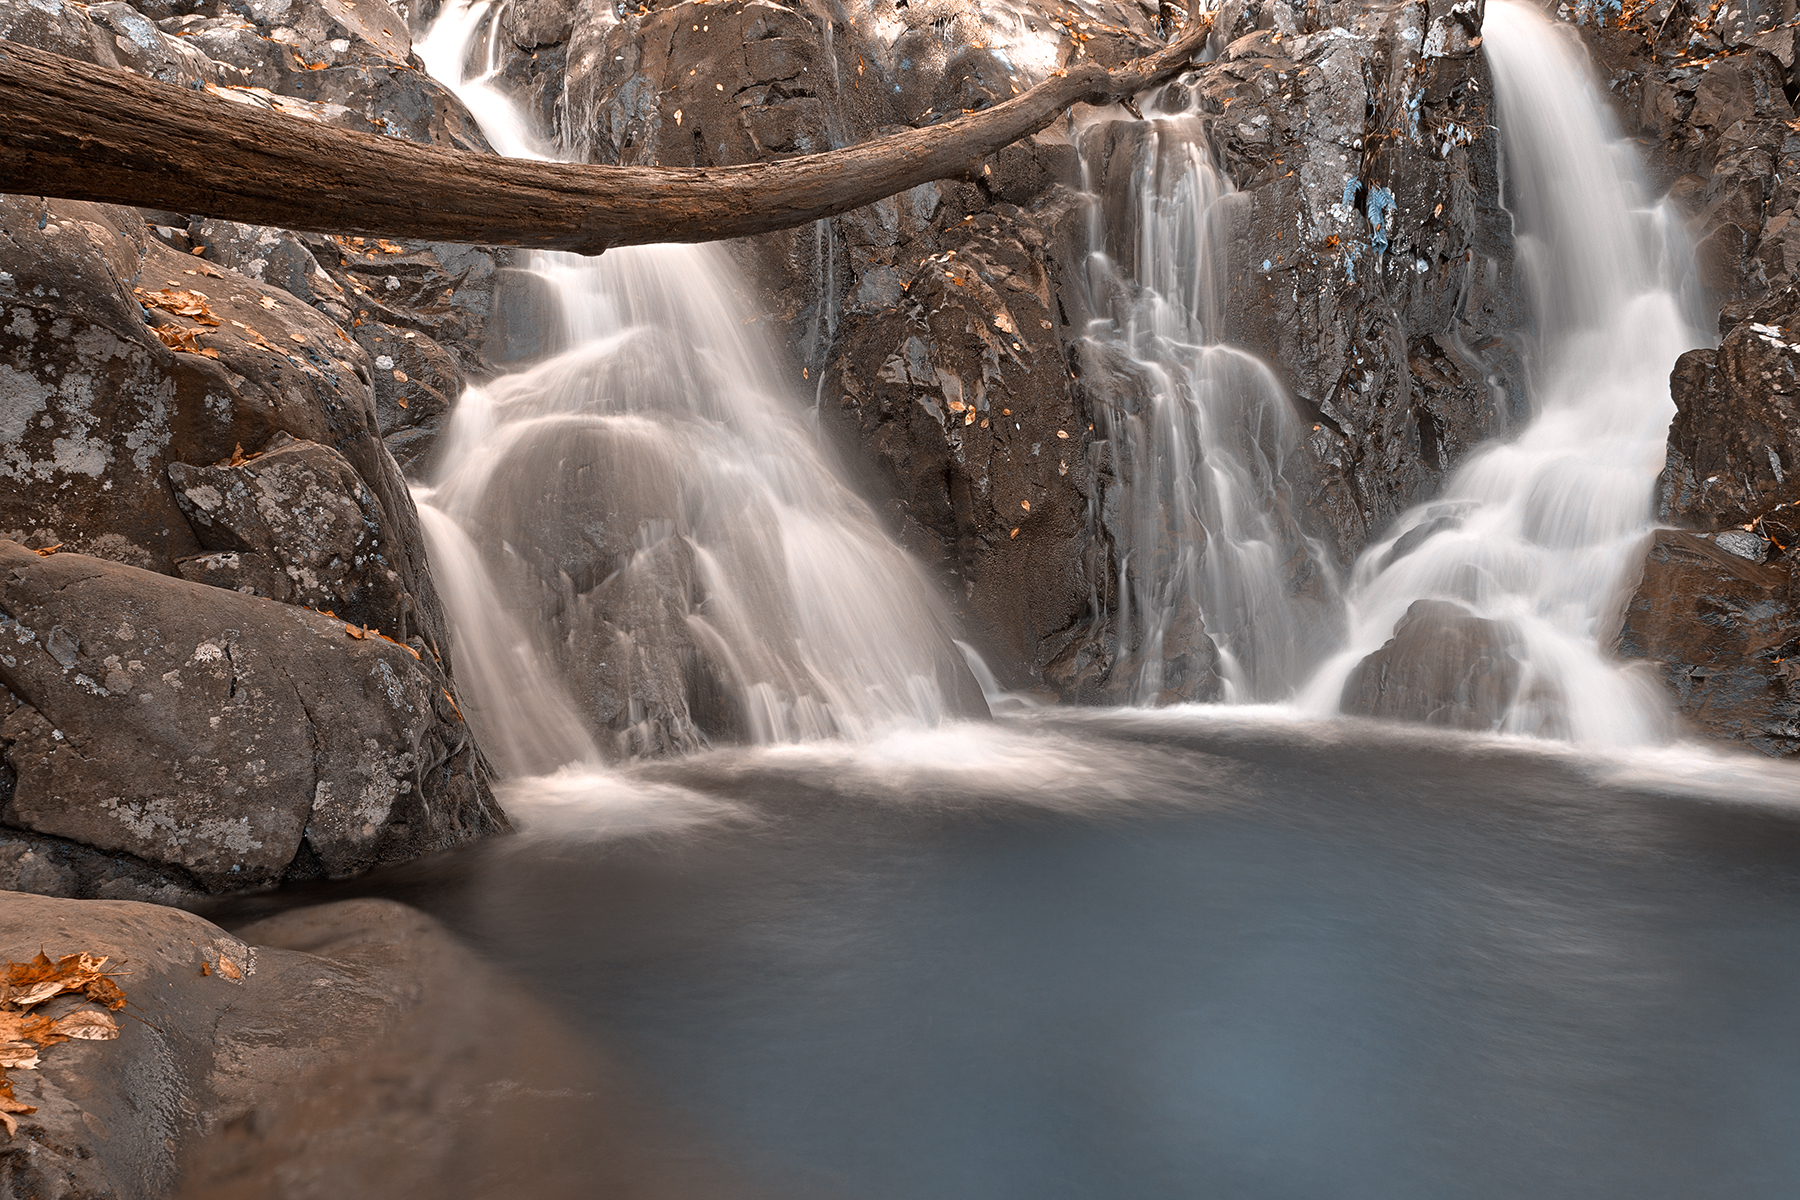 Blue rose river falls - hdr photo